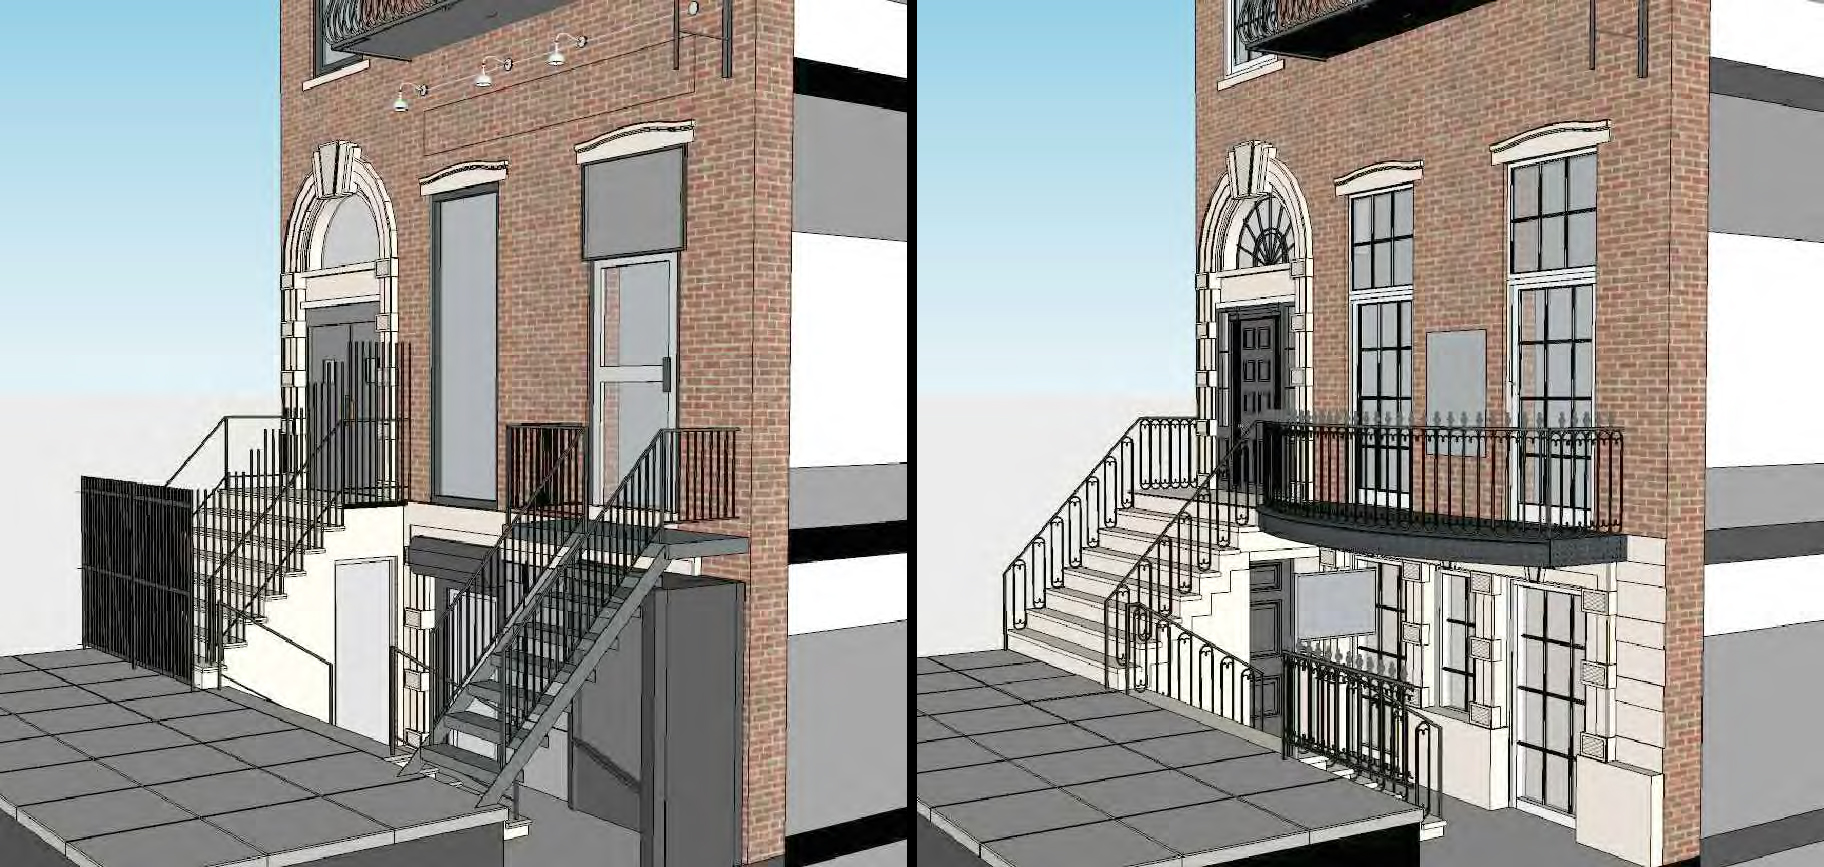 Ground and first floor of the Hamilton-Holly House, existing and proposed